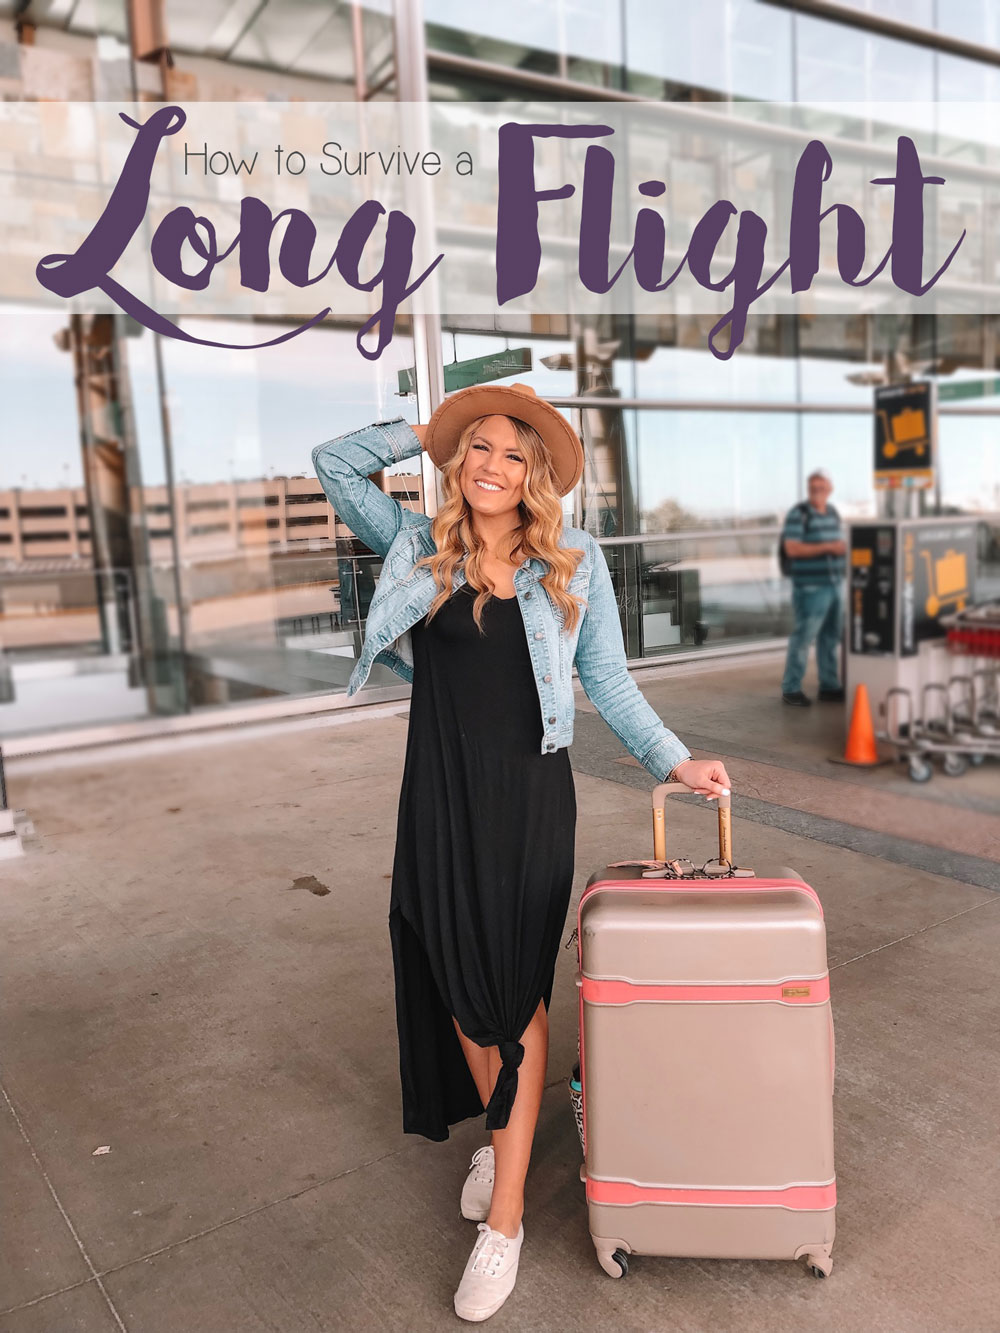 Blogger Amanda's OK shares tips on how to survive a long flight